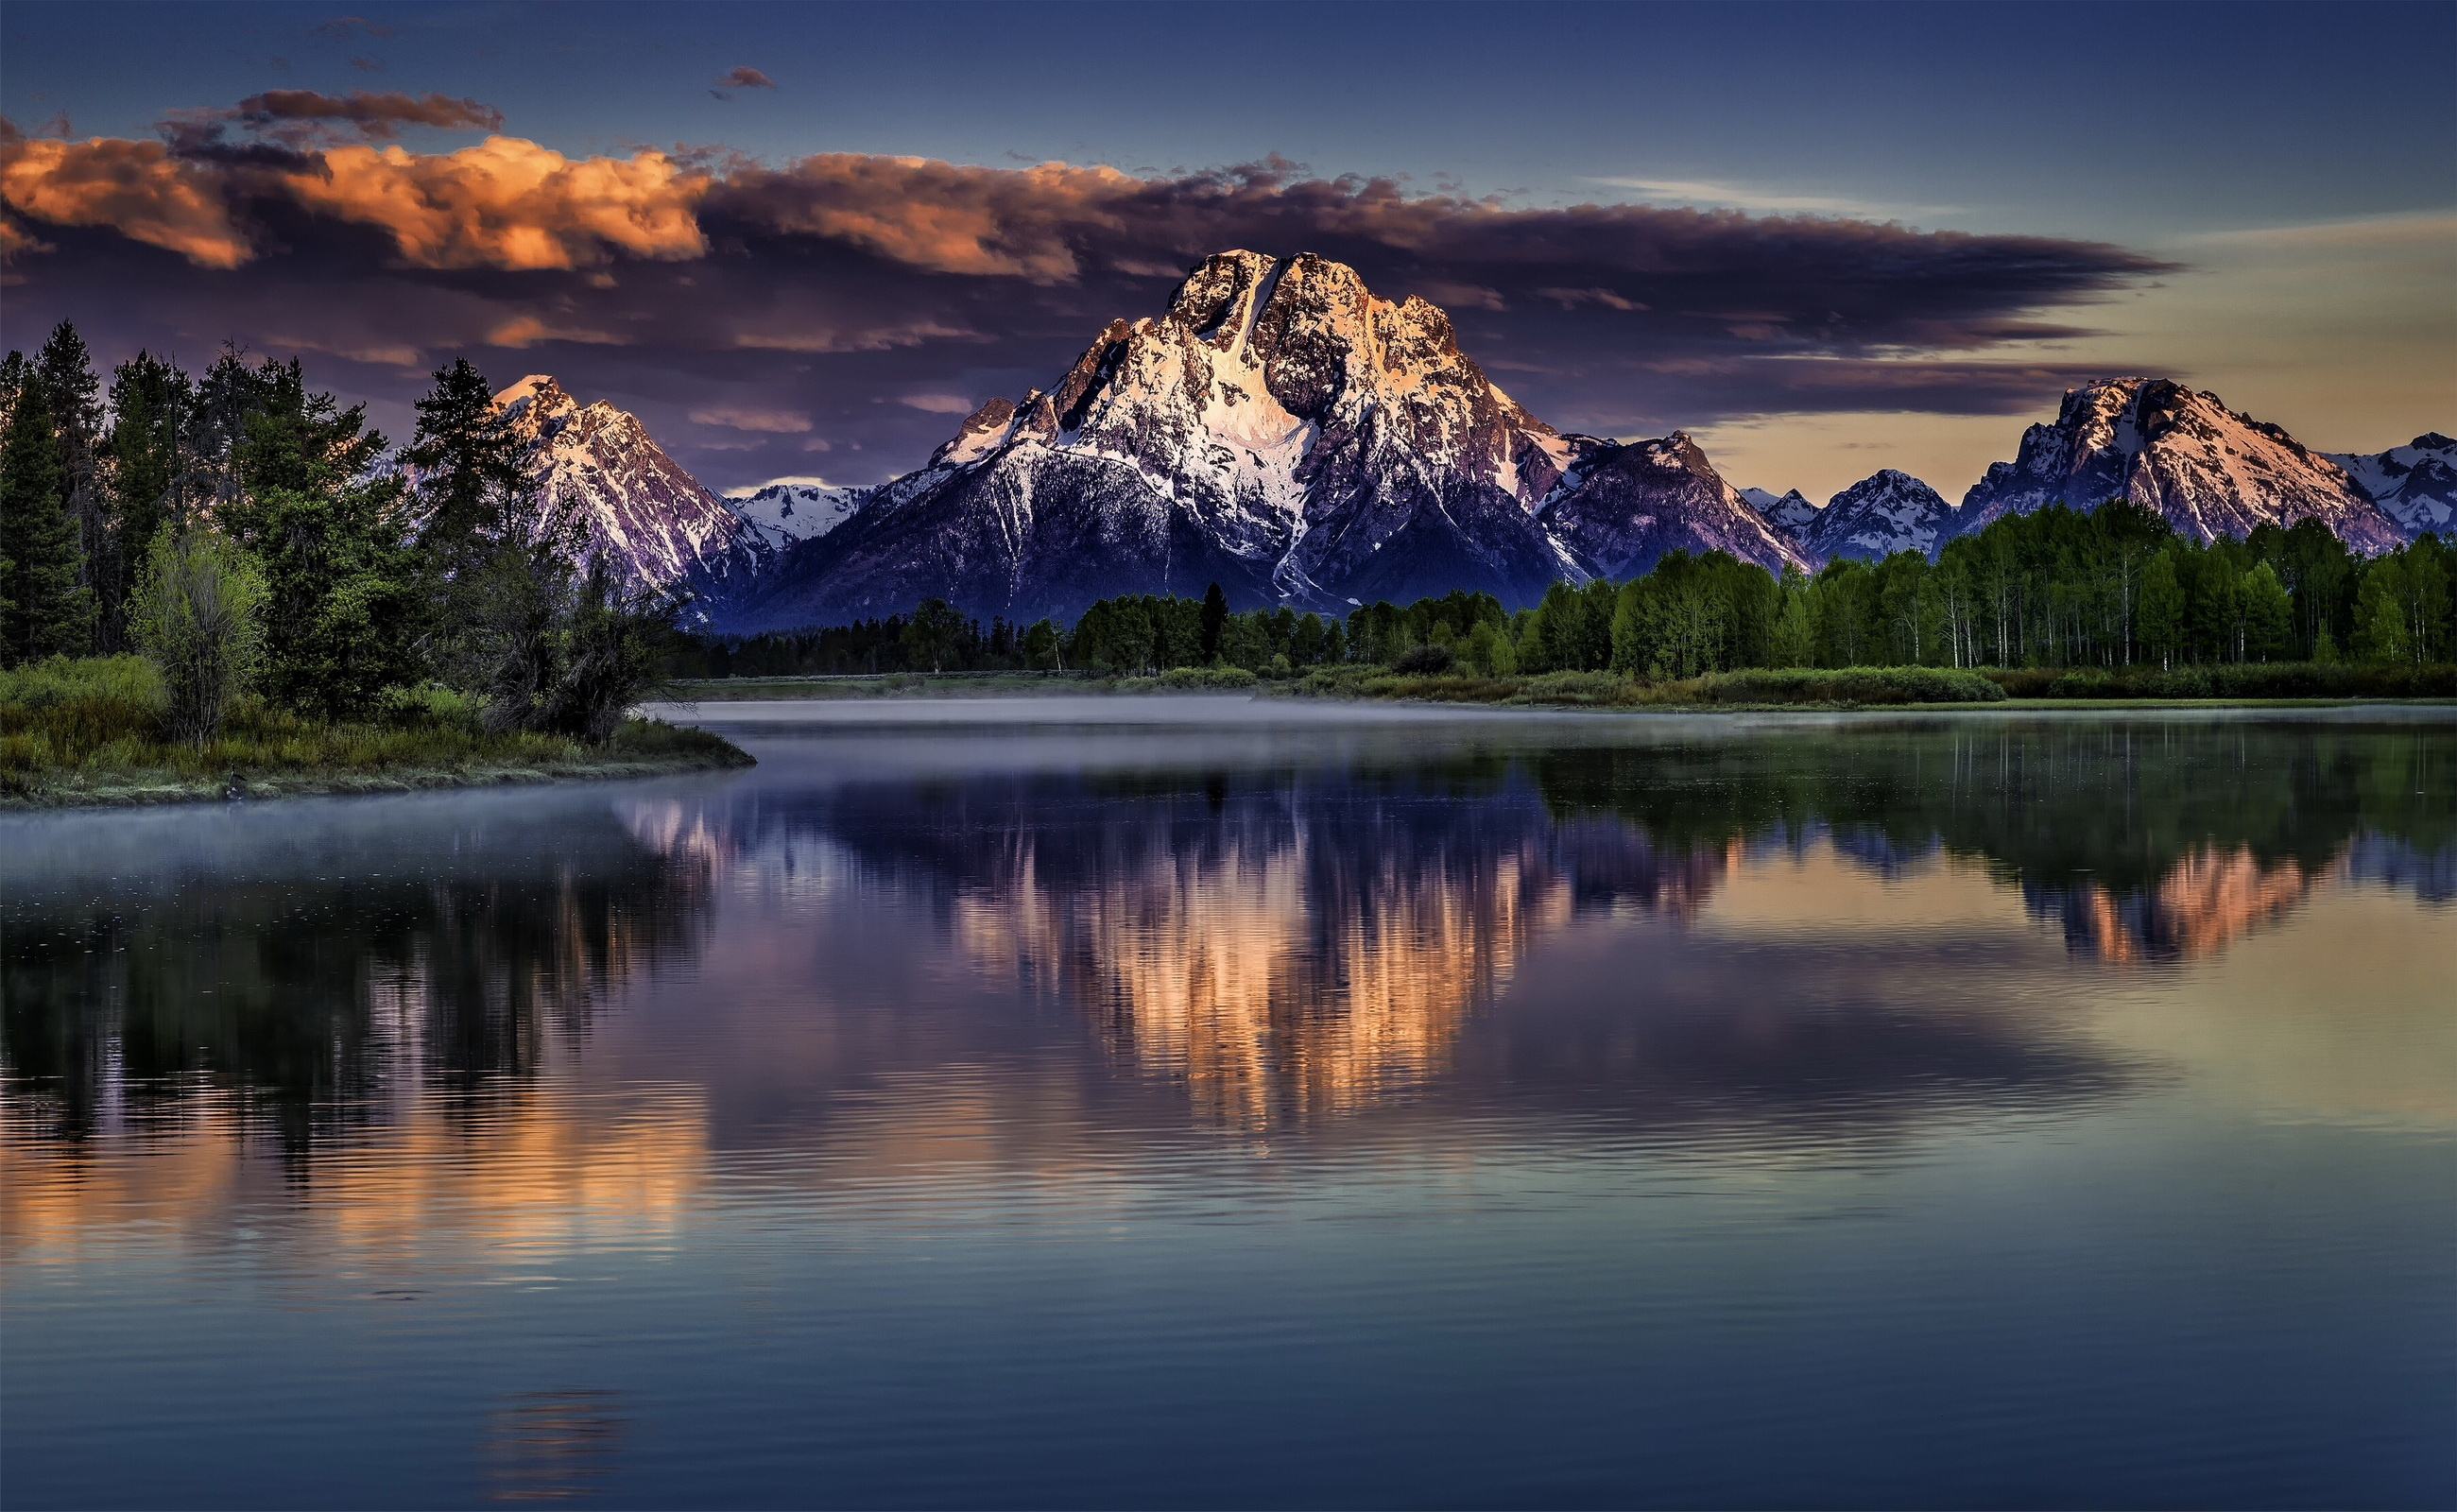 Hd Grand Teton National Park Wallpapers Full Hd Pictures